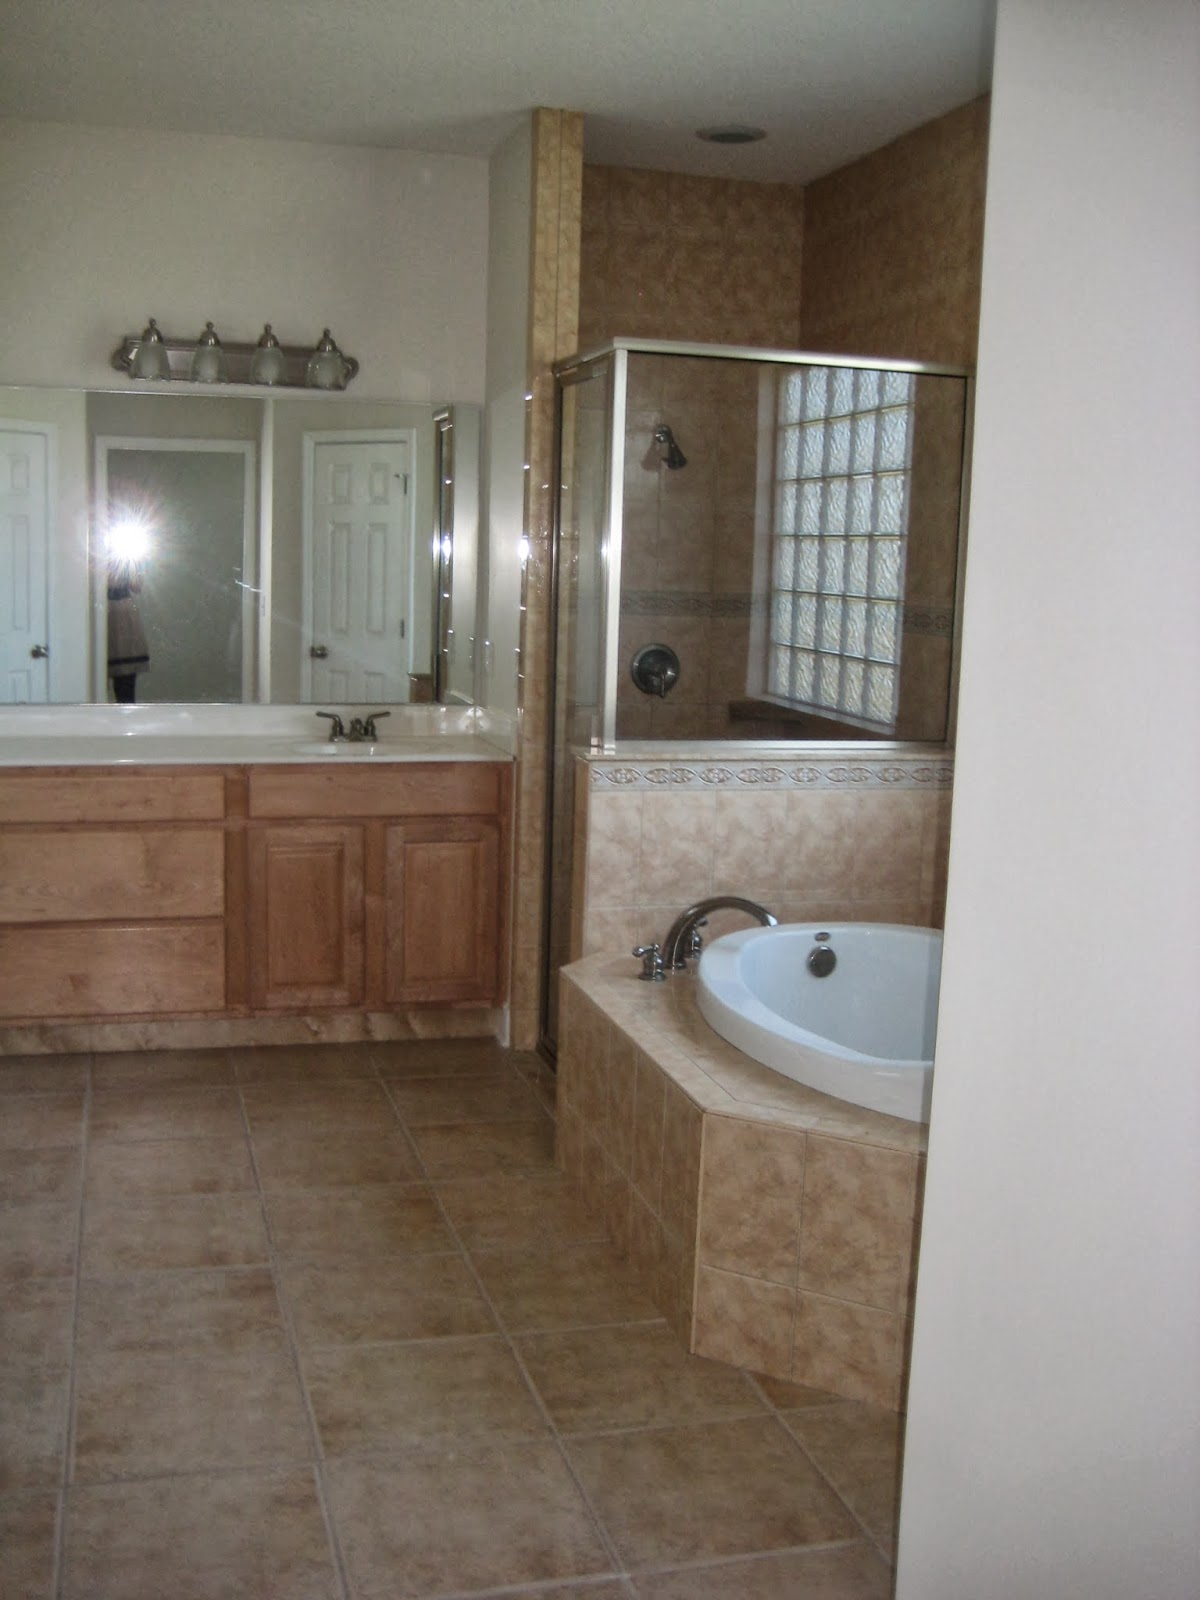 Lipstick and a brad nailer are the only essentials bathroom bathroom shower done dailygadgetfo Gallery